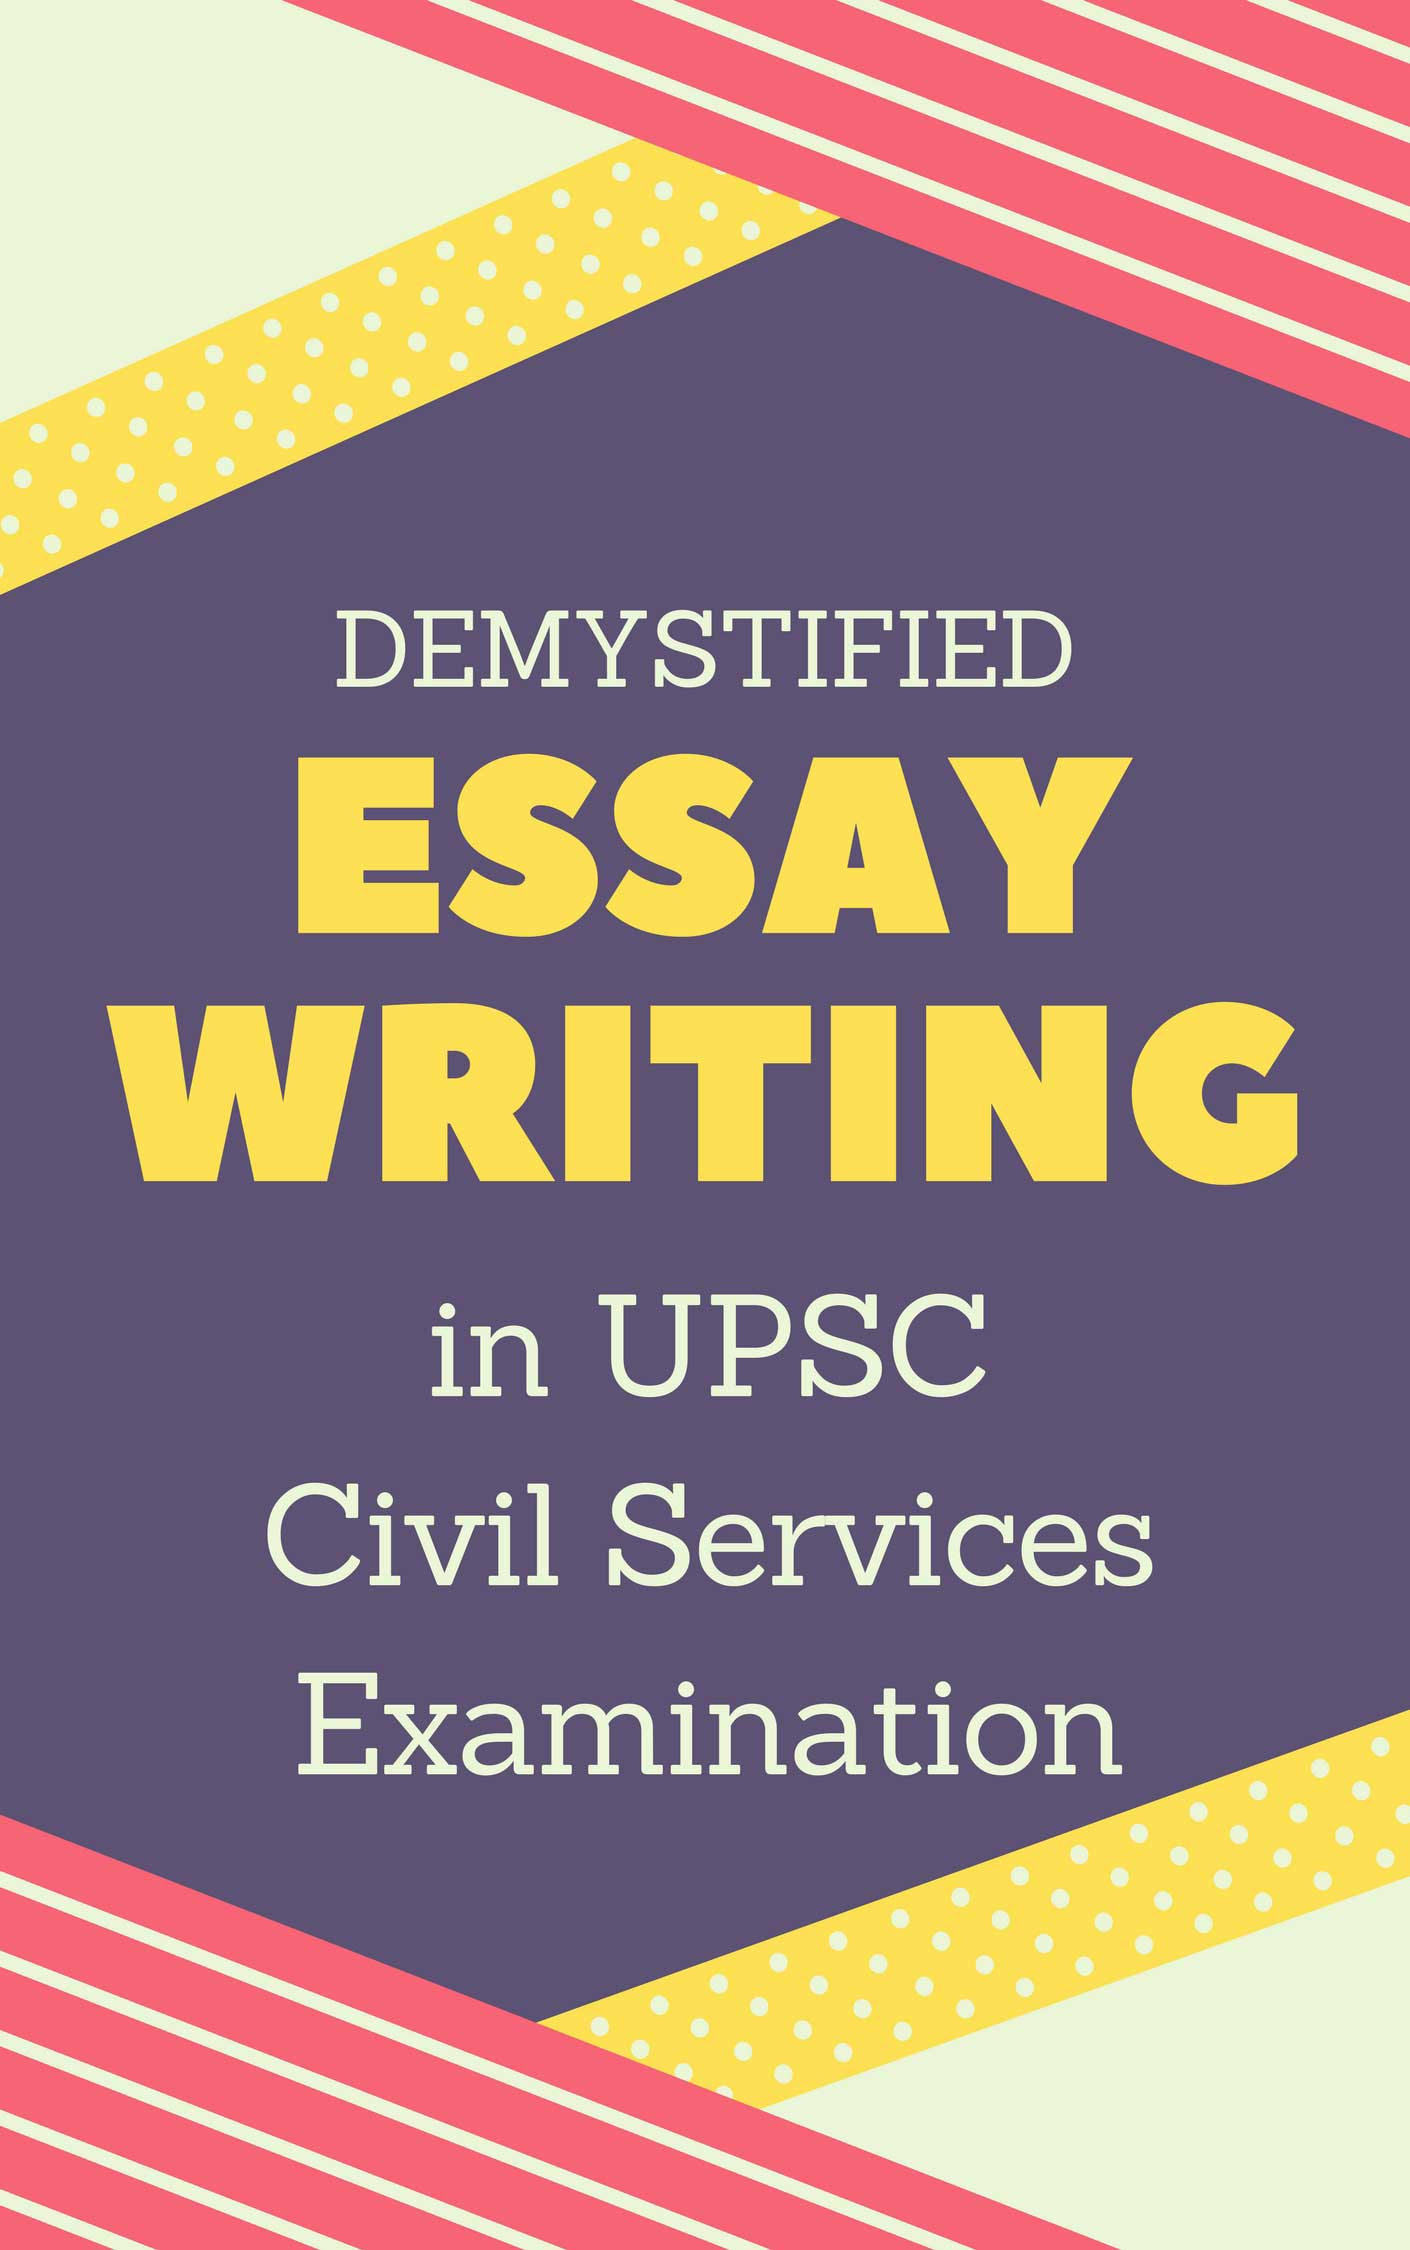 Upsc Mains  Preparation Strategy For Essay Paper   Iasbyheart The Essay Paper Of Mains Will Be The St Paper Youll Be Facing After  Having Cleared The Prelims Its One Of The Most Important Papers In Terms  Of